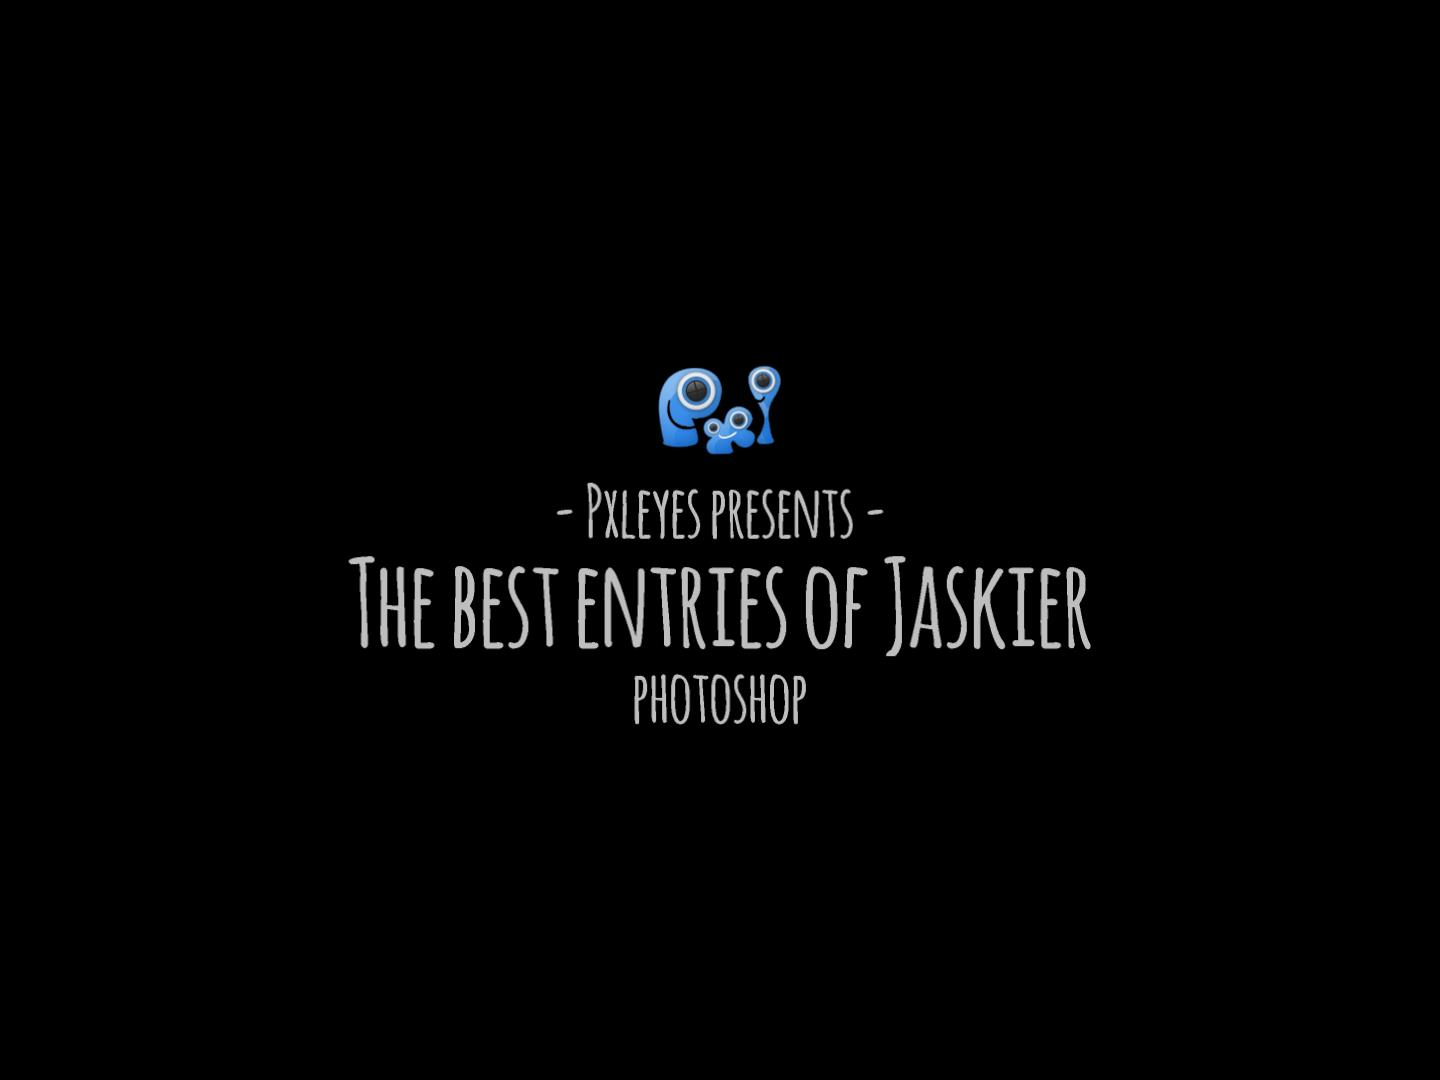 The best entries of Jaskier